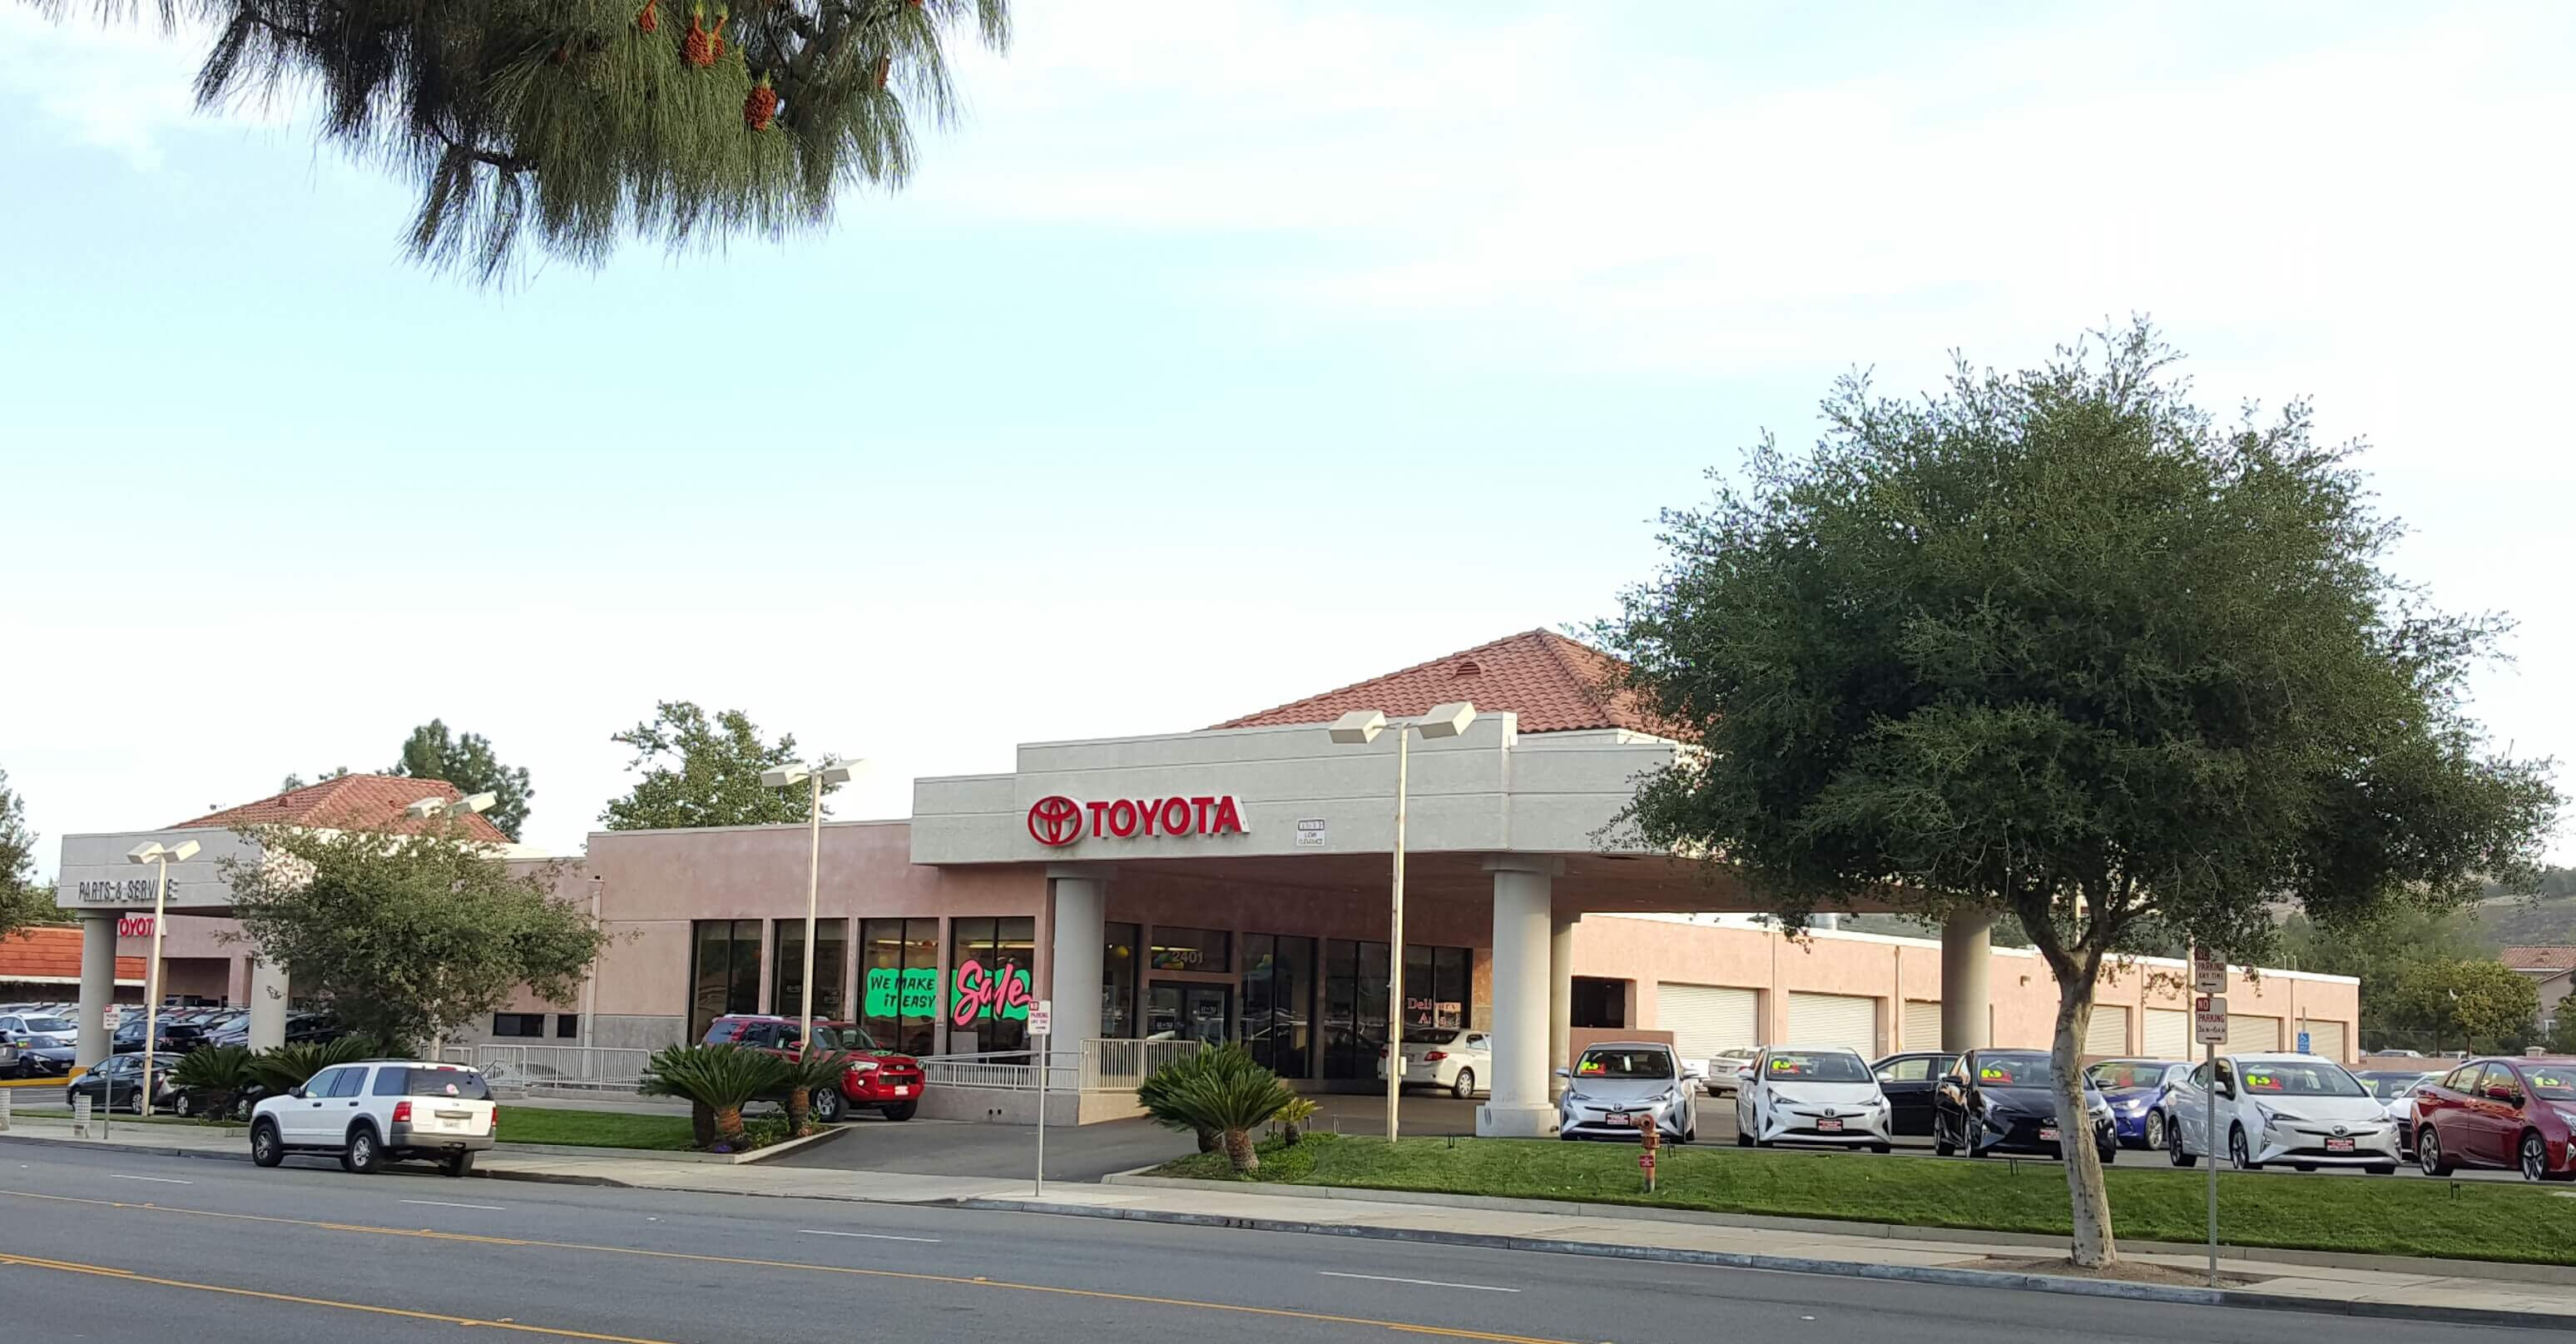 Good Expert Automotive Services For Toyota Vehicles In Thousand Oaks